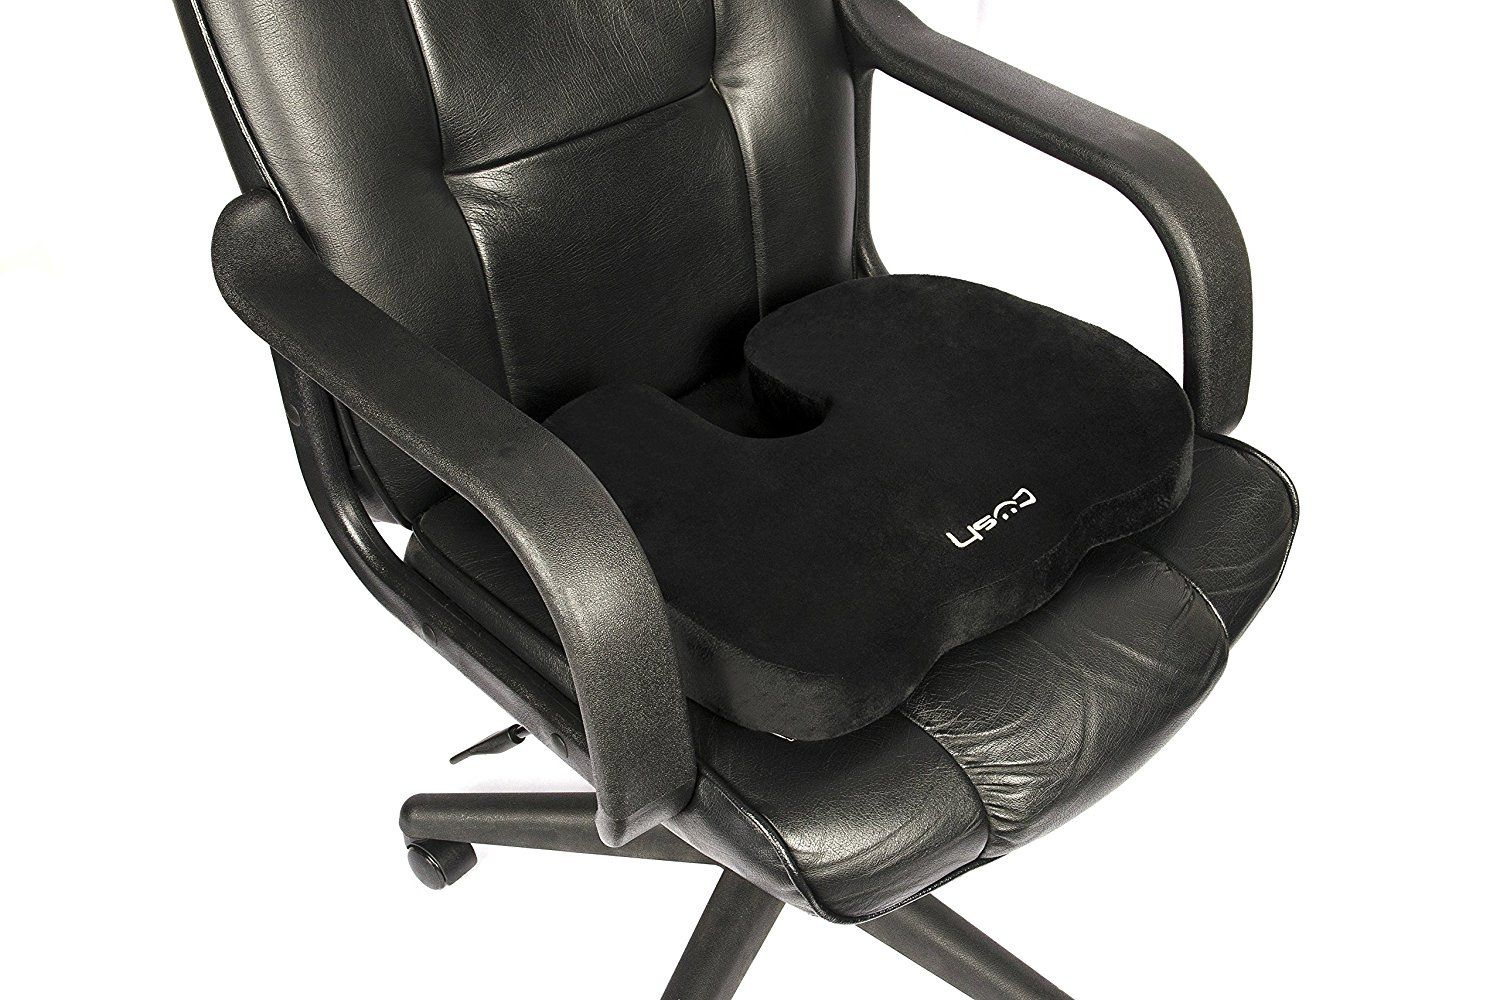 Office Chair Cushion Reviews Real Wood Home Furniture Check More At Http